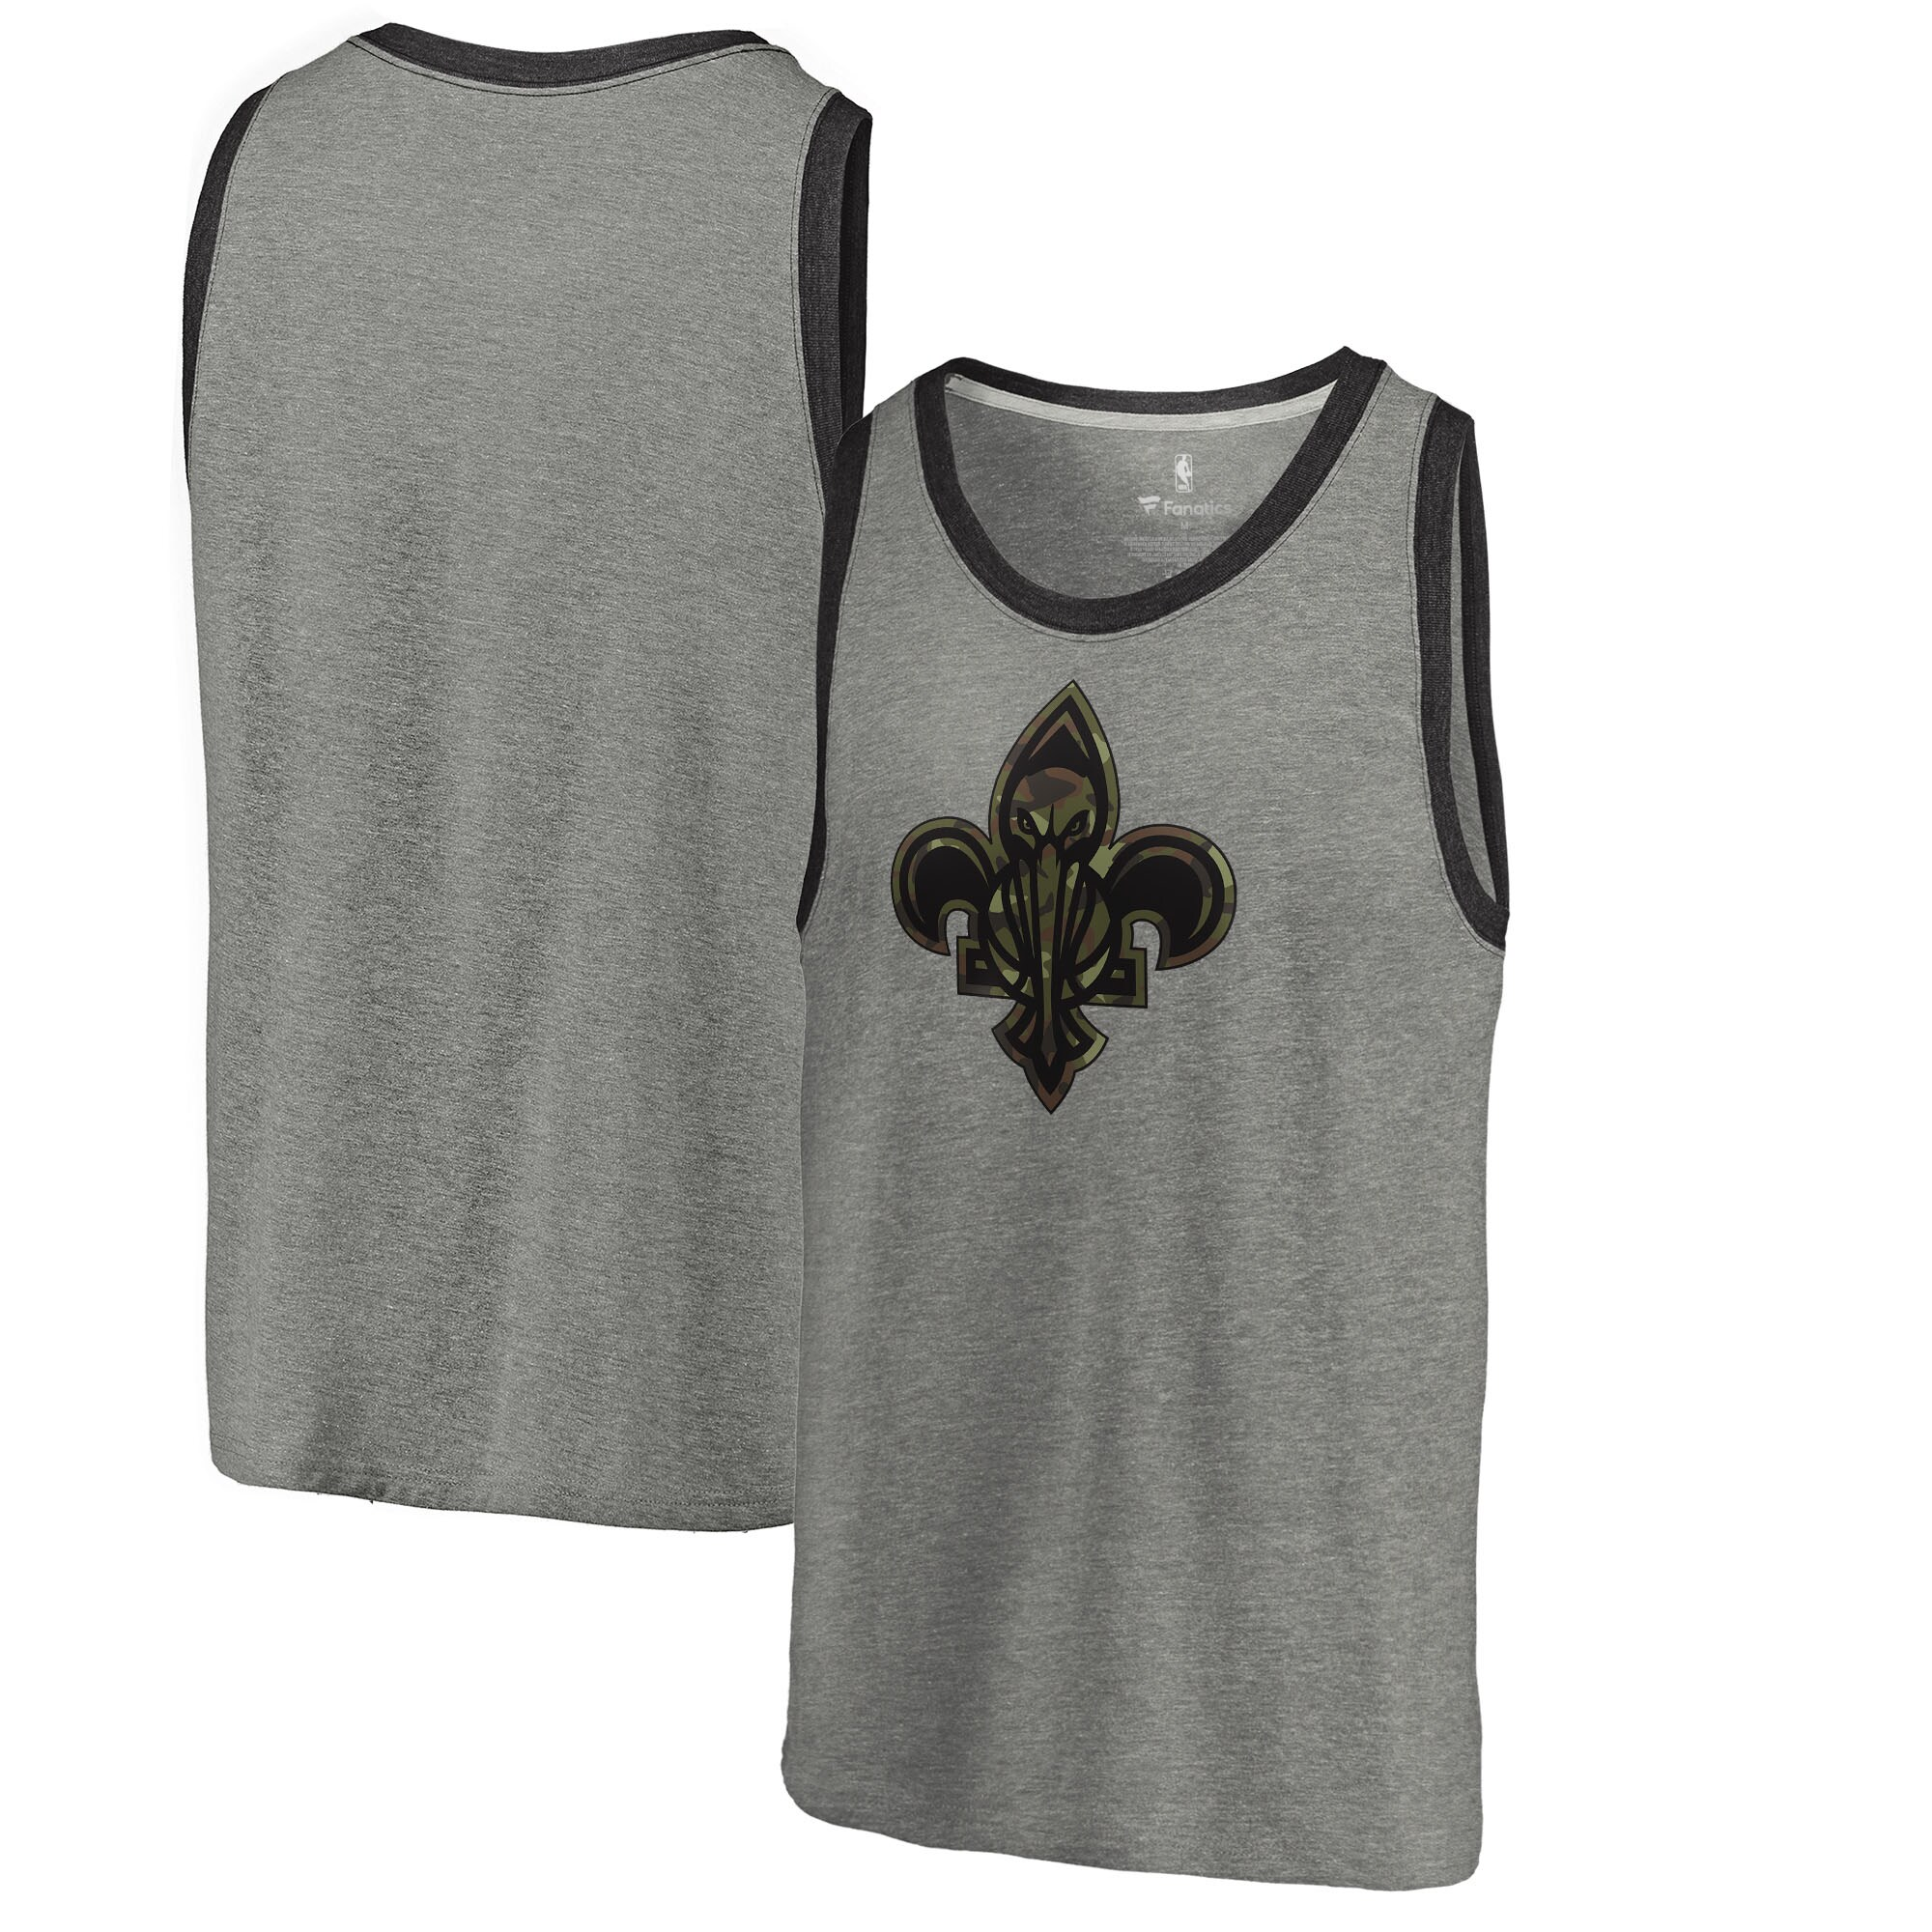 New Orleans Pelicans Fanatics Branded Camo Collection Prestige Tri-Blend Tank Top - Heathered Gray